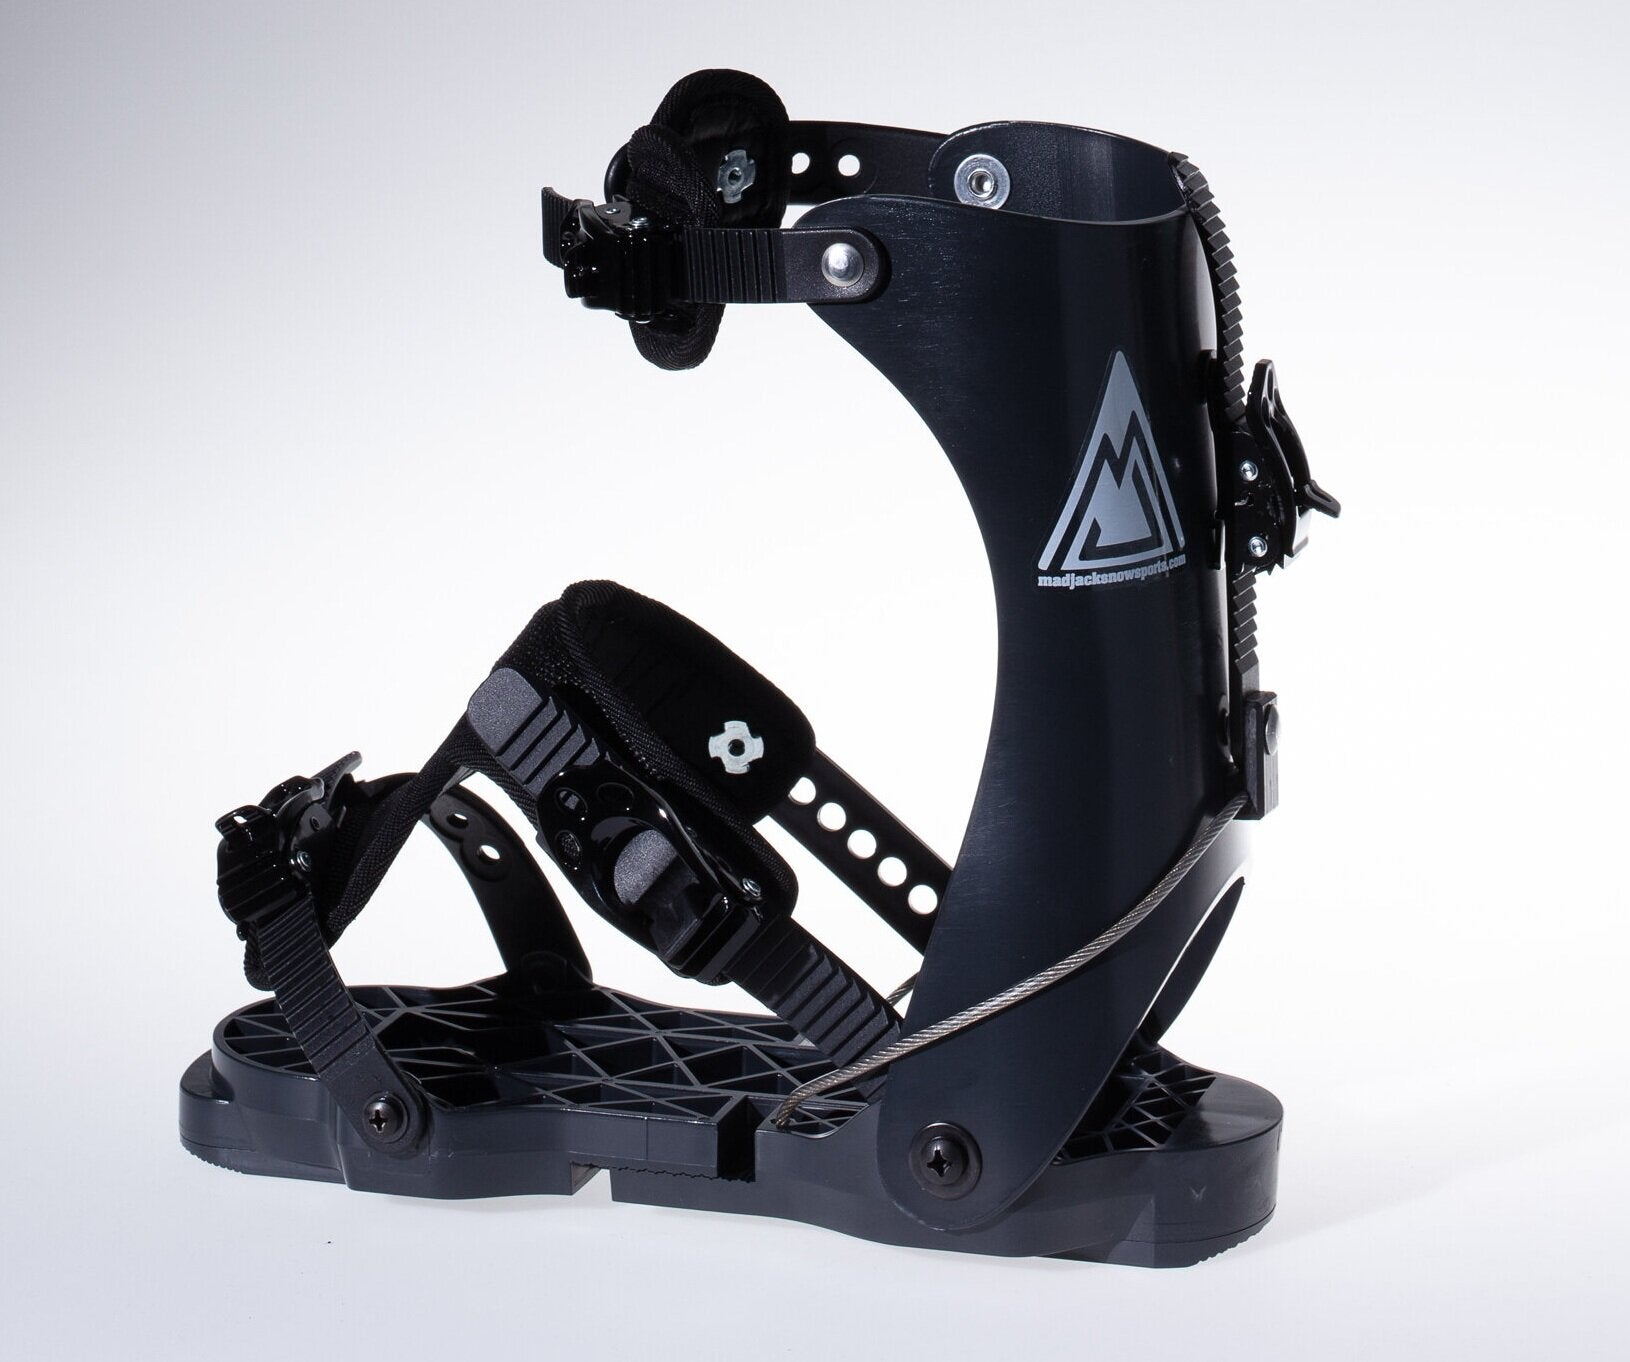 MadJacks Ski Boots Binding, The Most Comfortable Snowboard Boot Adaptation Frame, Ski Bindings For Men and Women